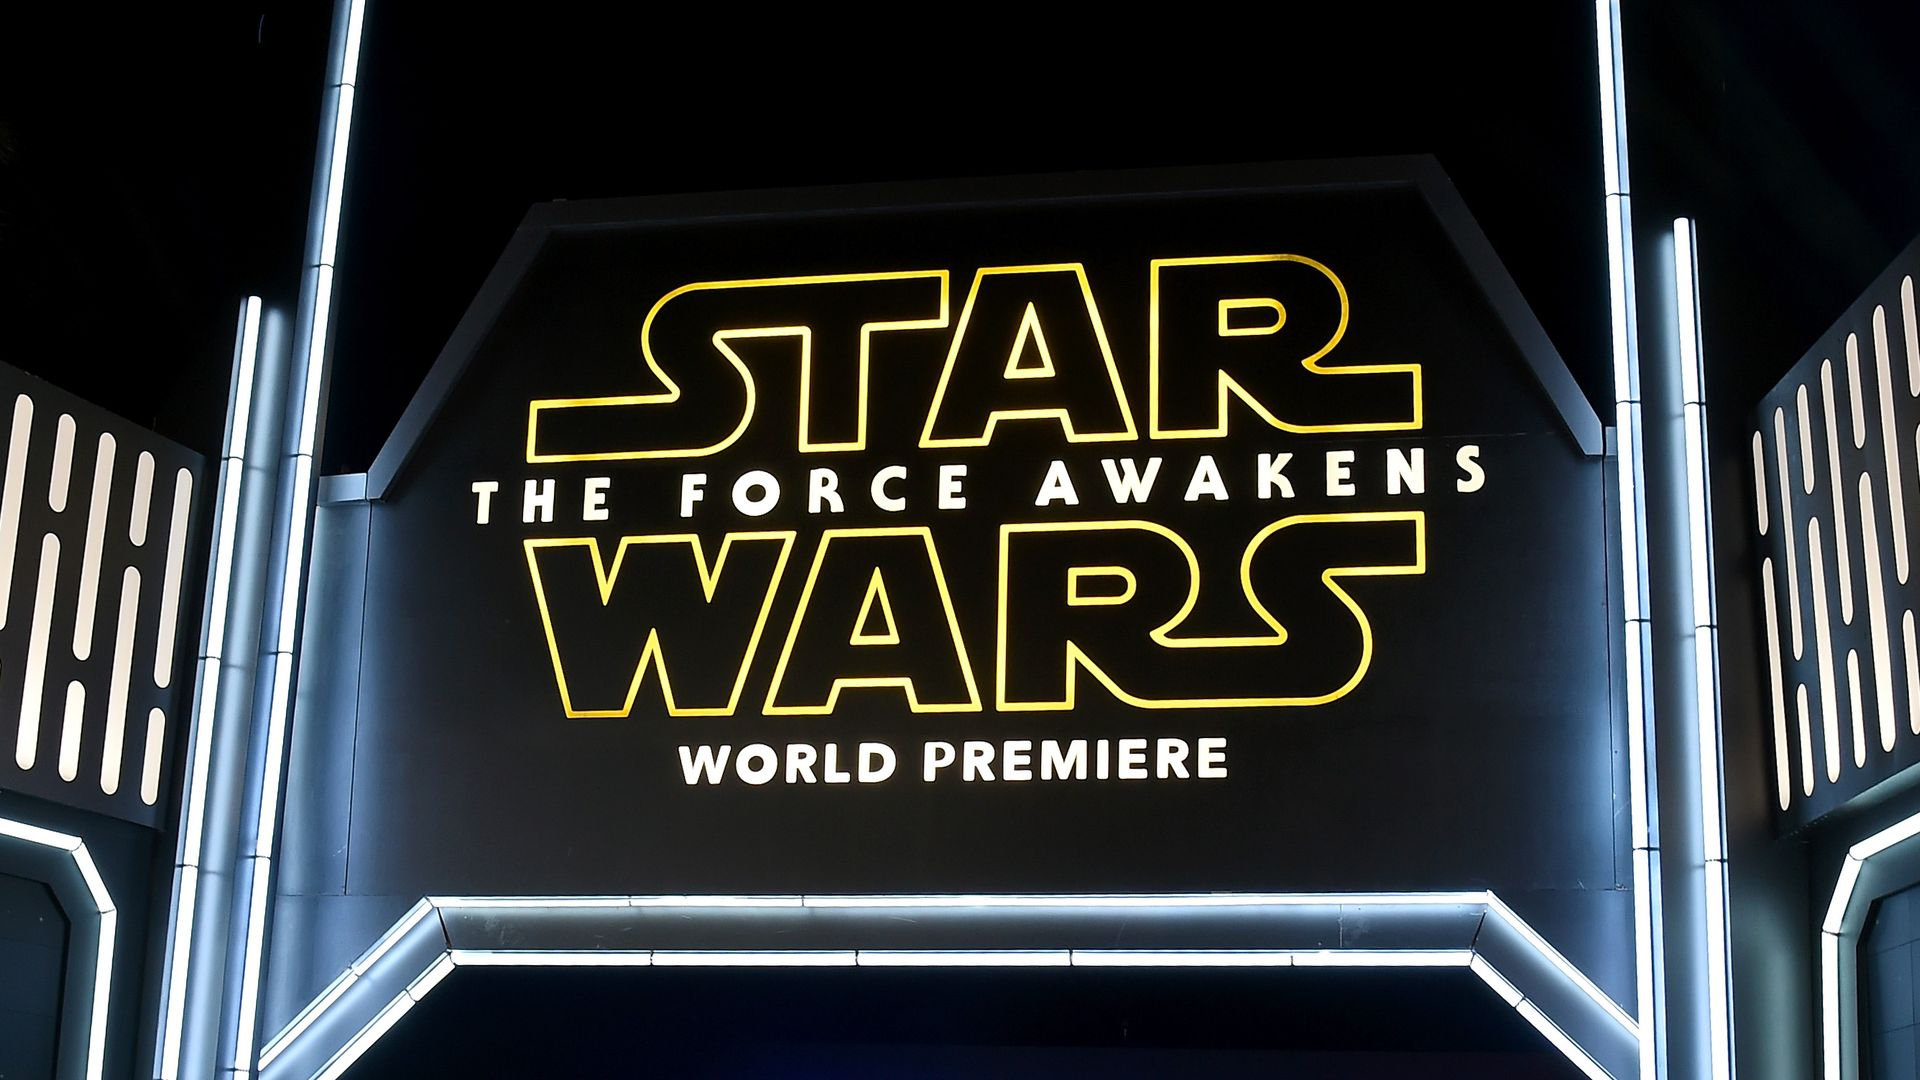 who said it star wars the force awakens quiz howstuffworks